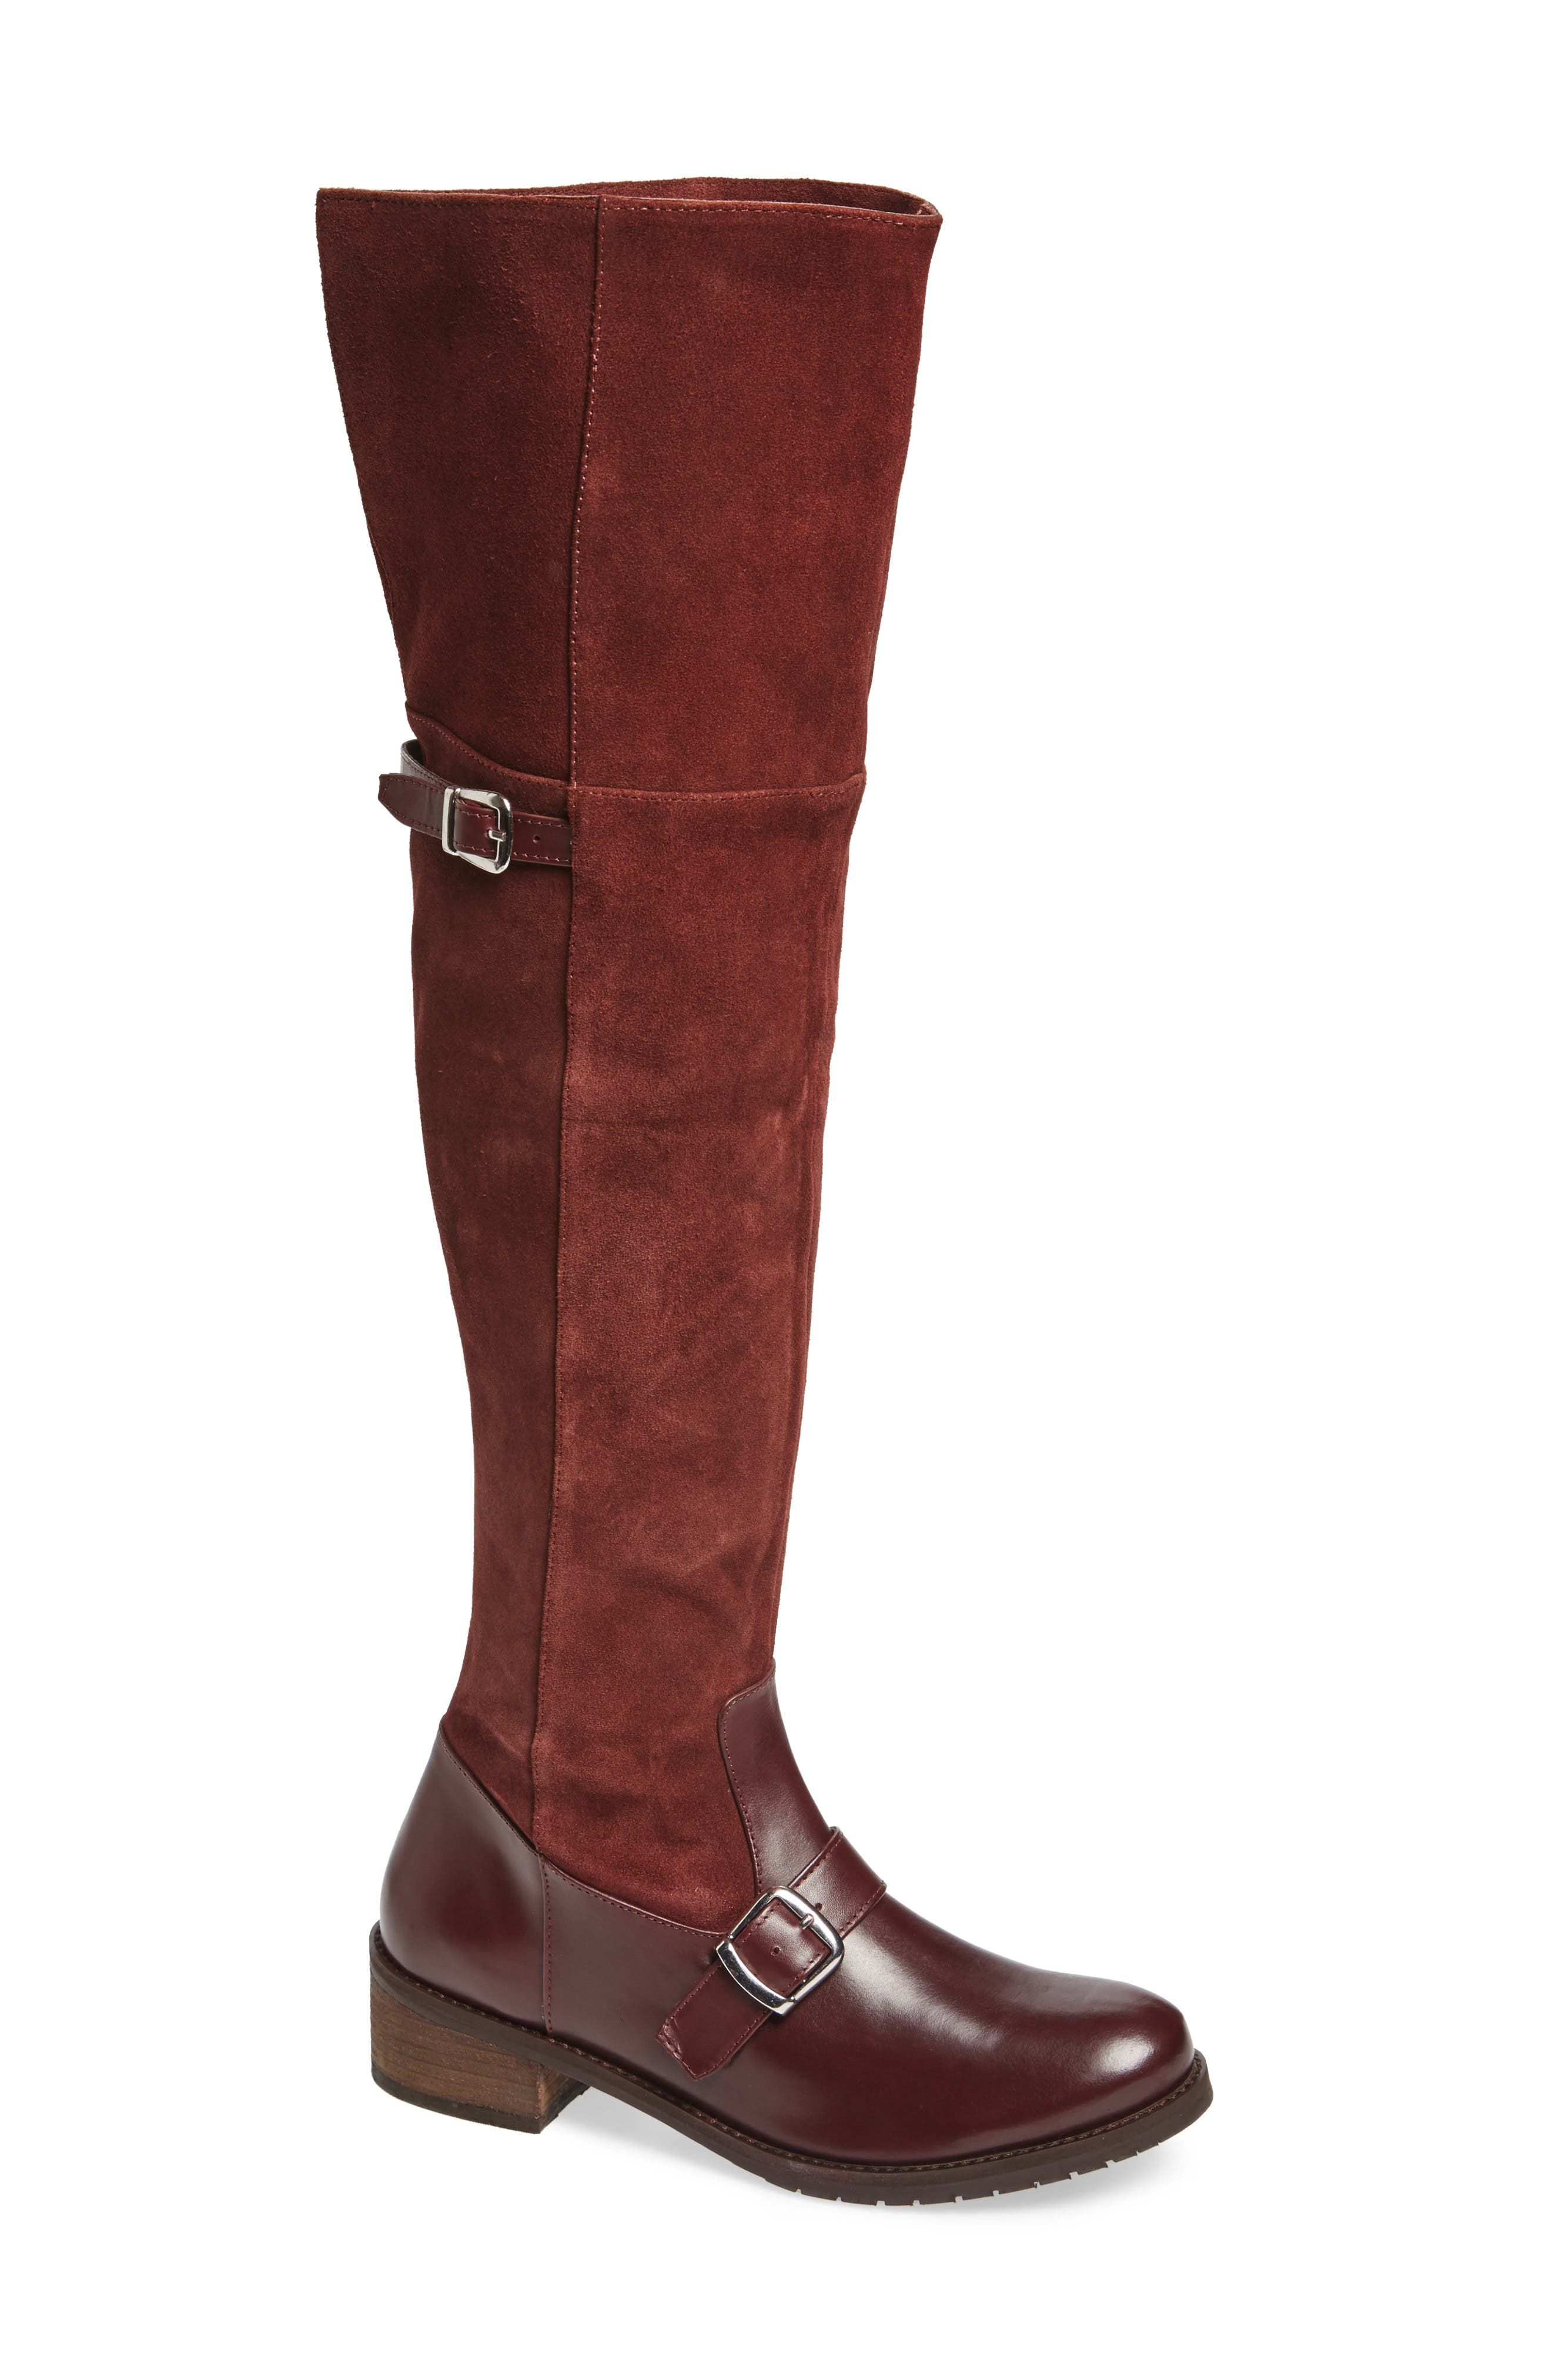 Lola Over the Knee Boot,                             Main thumbnail 1, color,                             Wine Suede